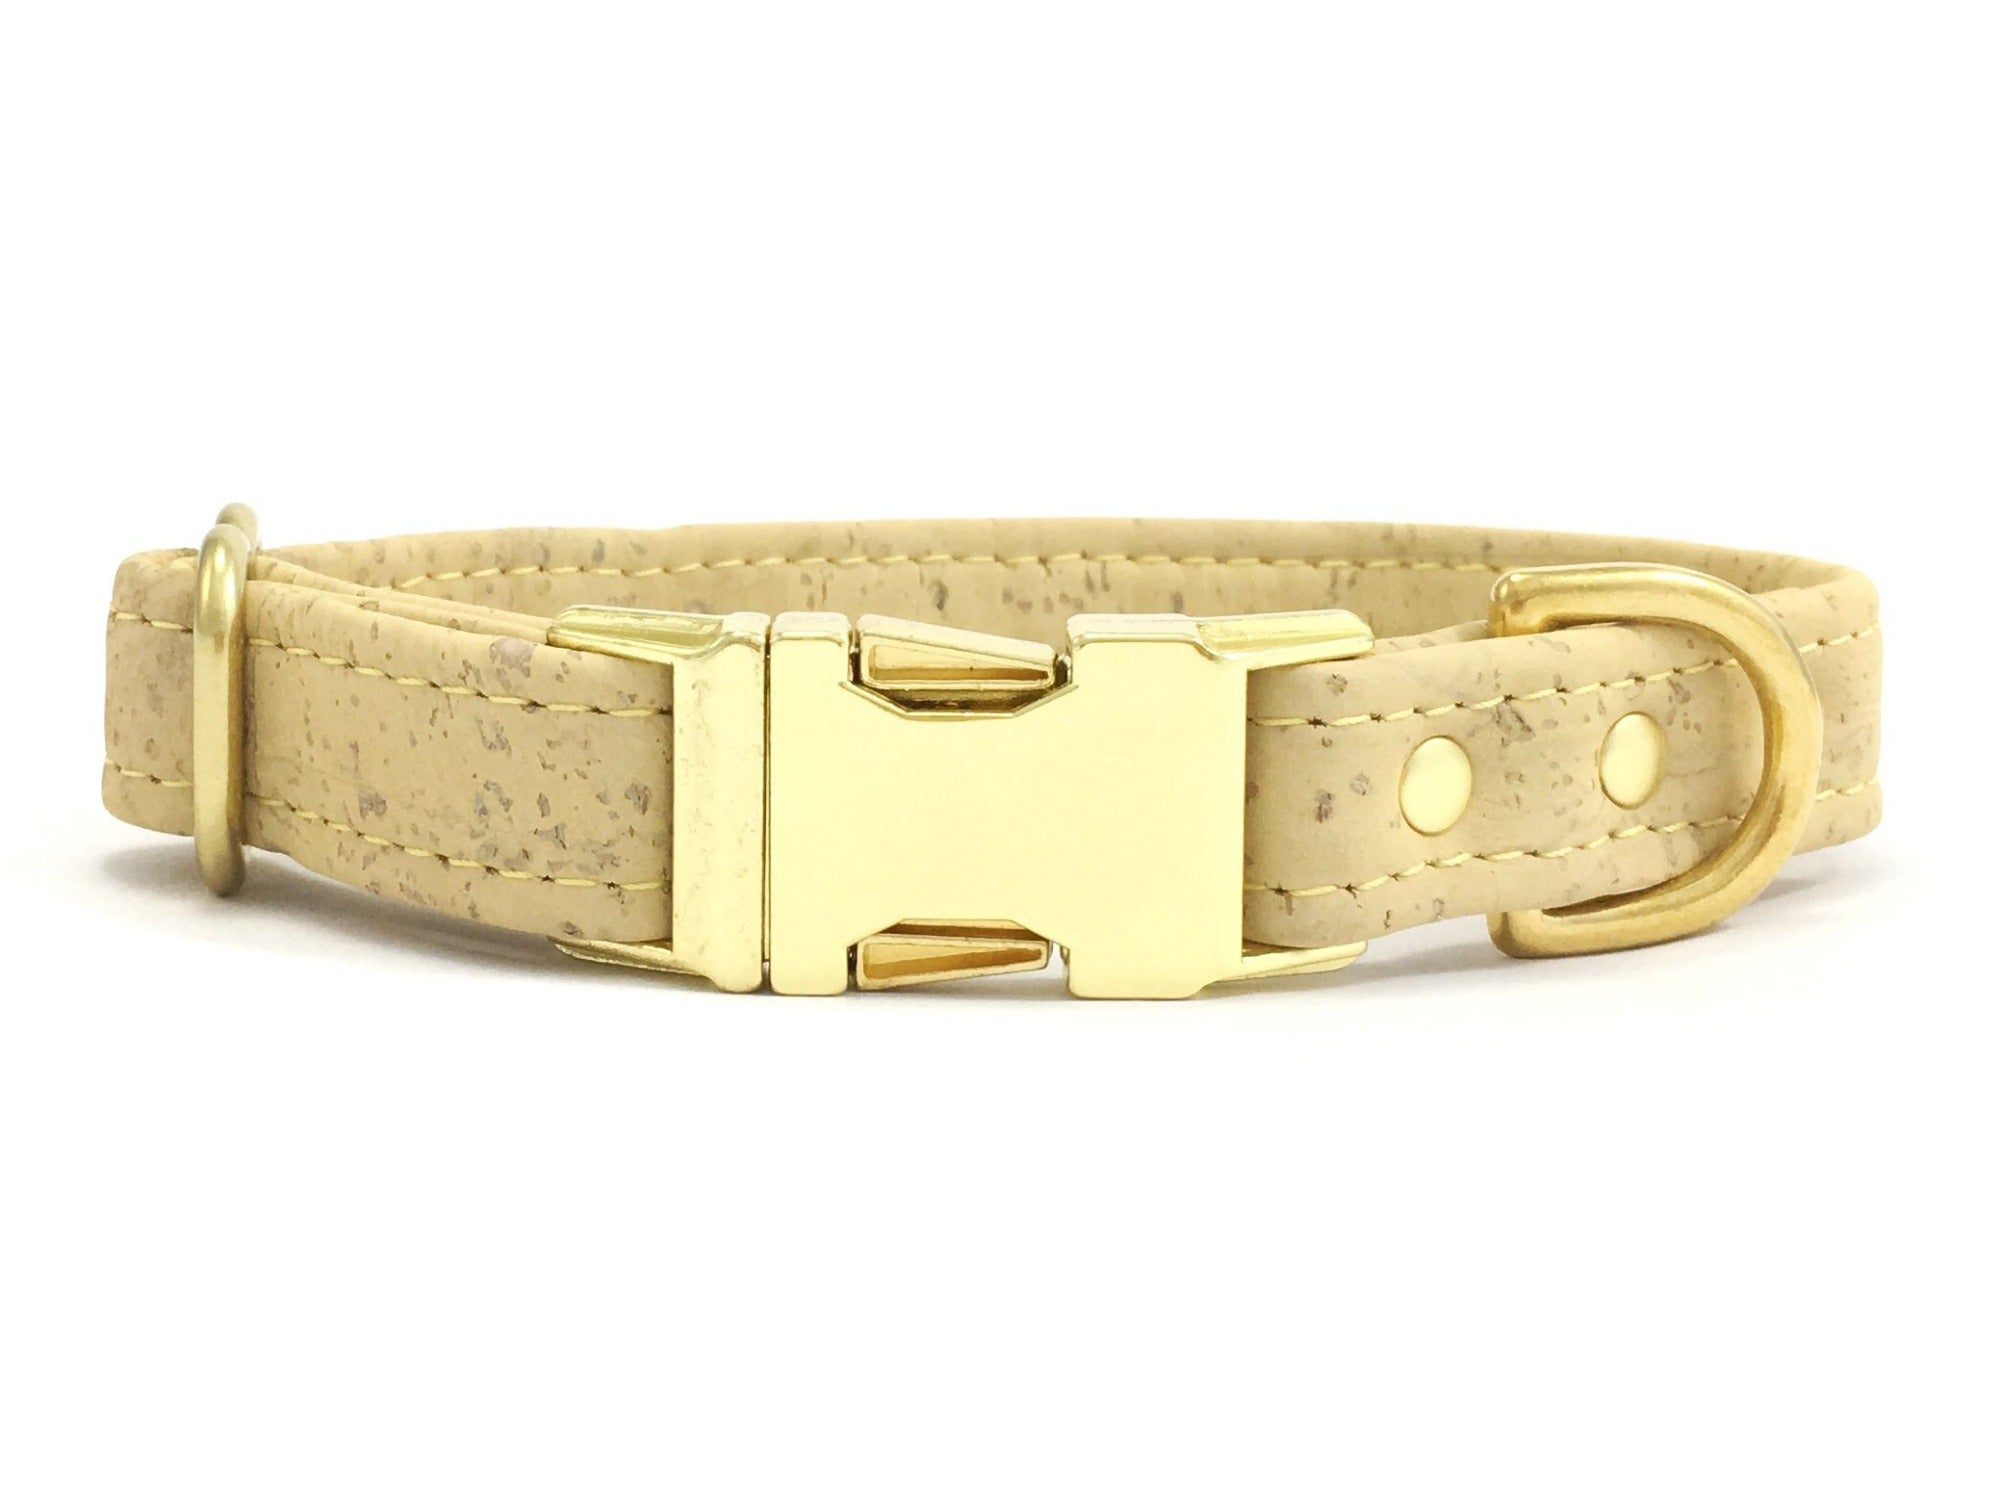 Pastel yellow dog collar in vegan cork leather with luxury brass buckle